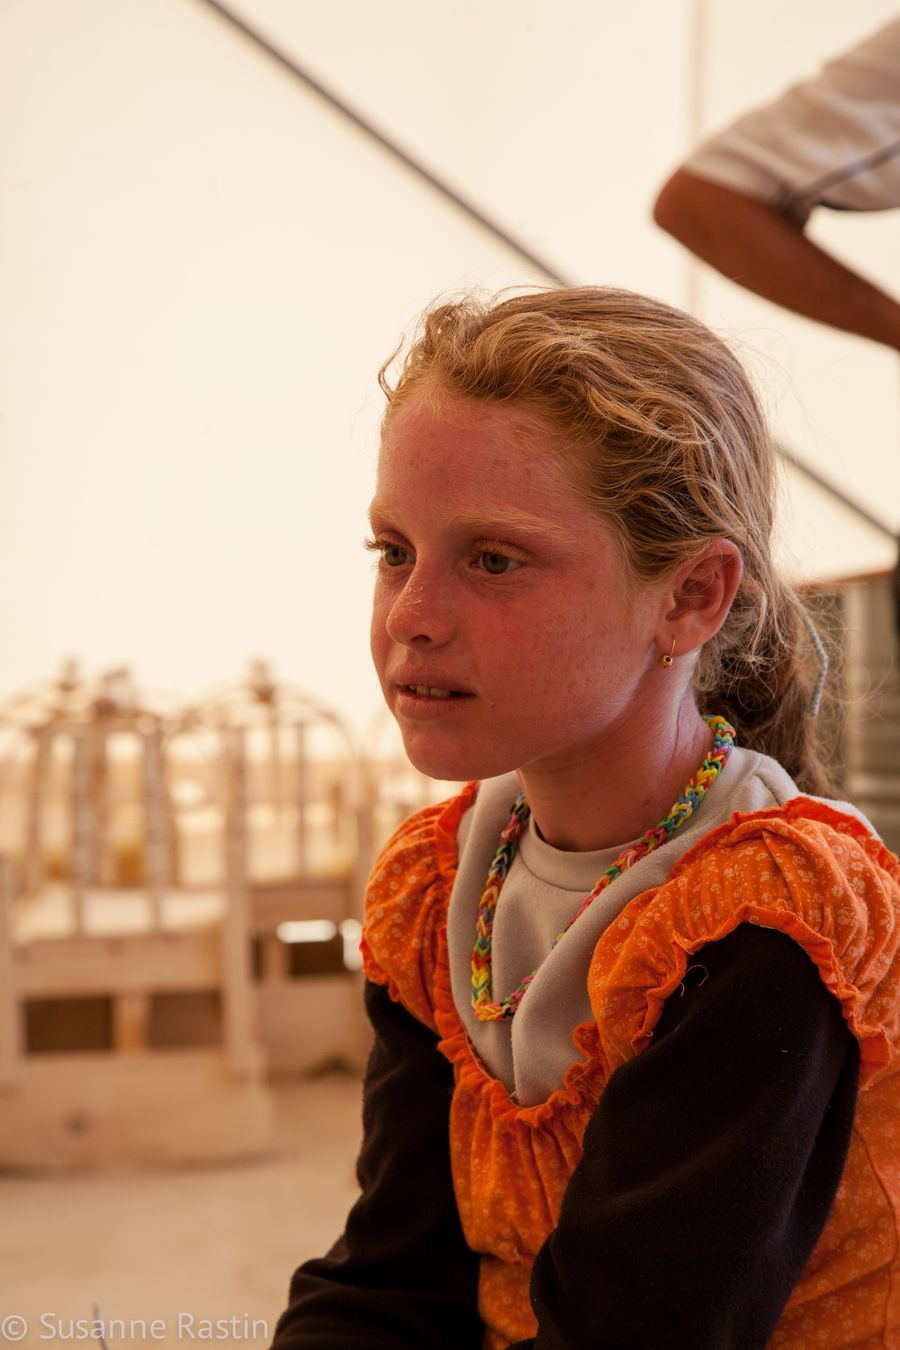 Ten-year-old Zina has lived with her family in the Bersevi II refugee camp for seven months.